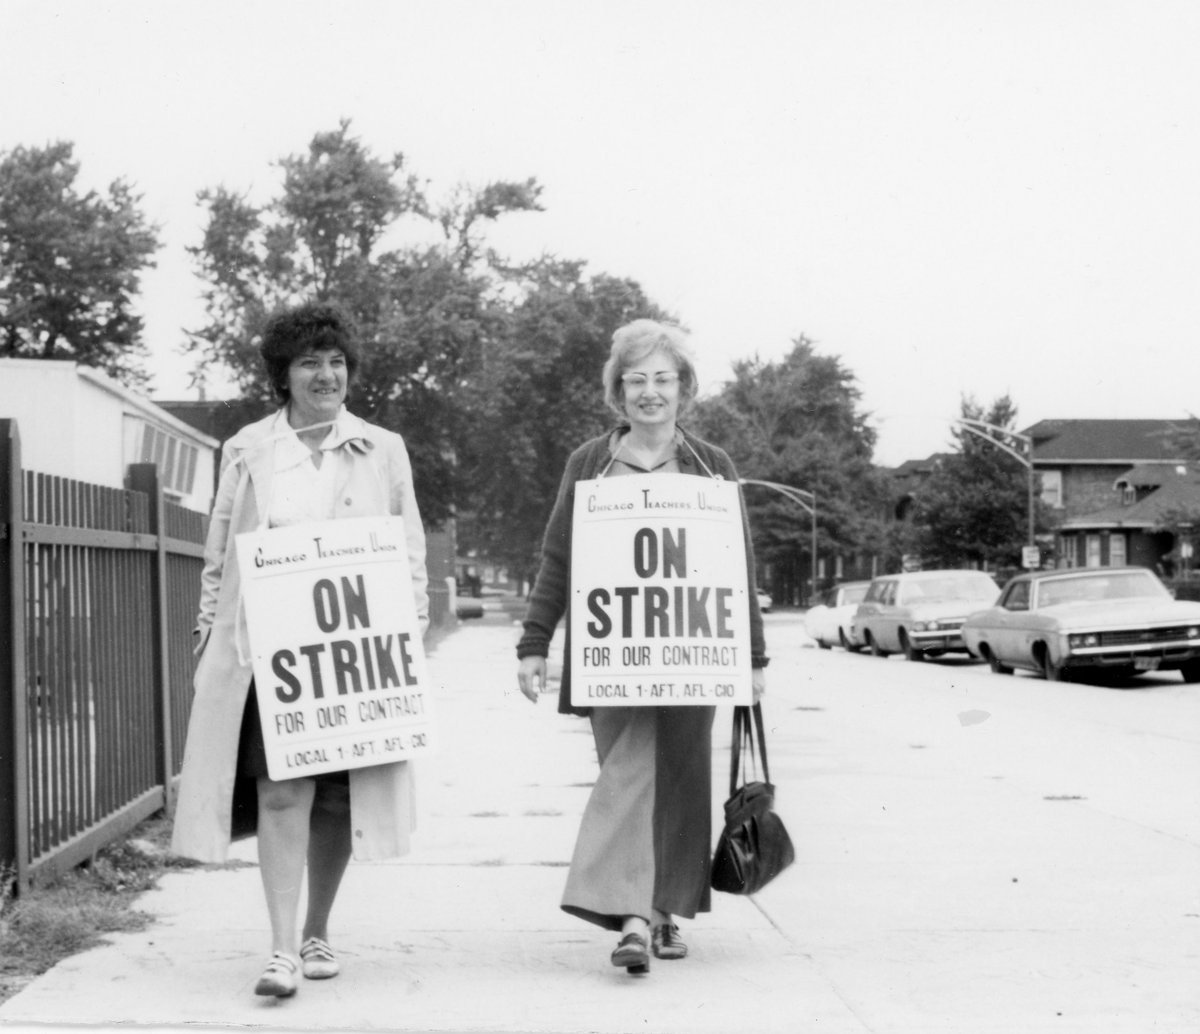 My mom was a member of @CTULocal1 This is her walking the picket line back in the 60s.  She's the one on the right. https://t.co/TotBywPnYg